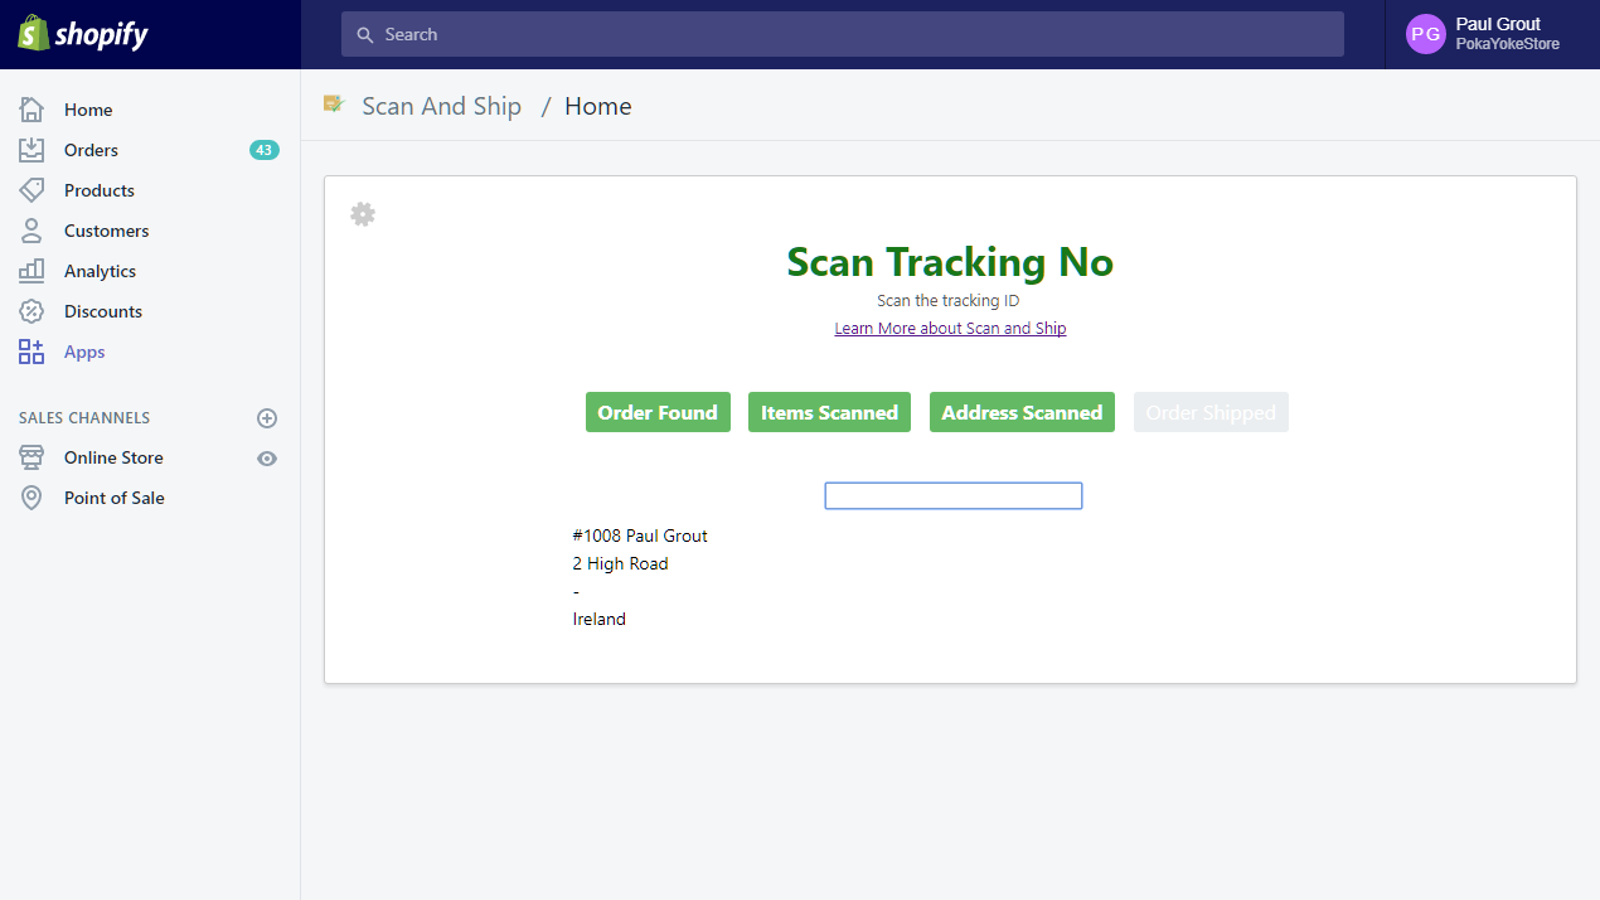 Scan Tracking